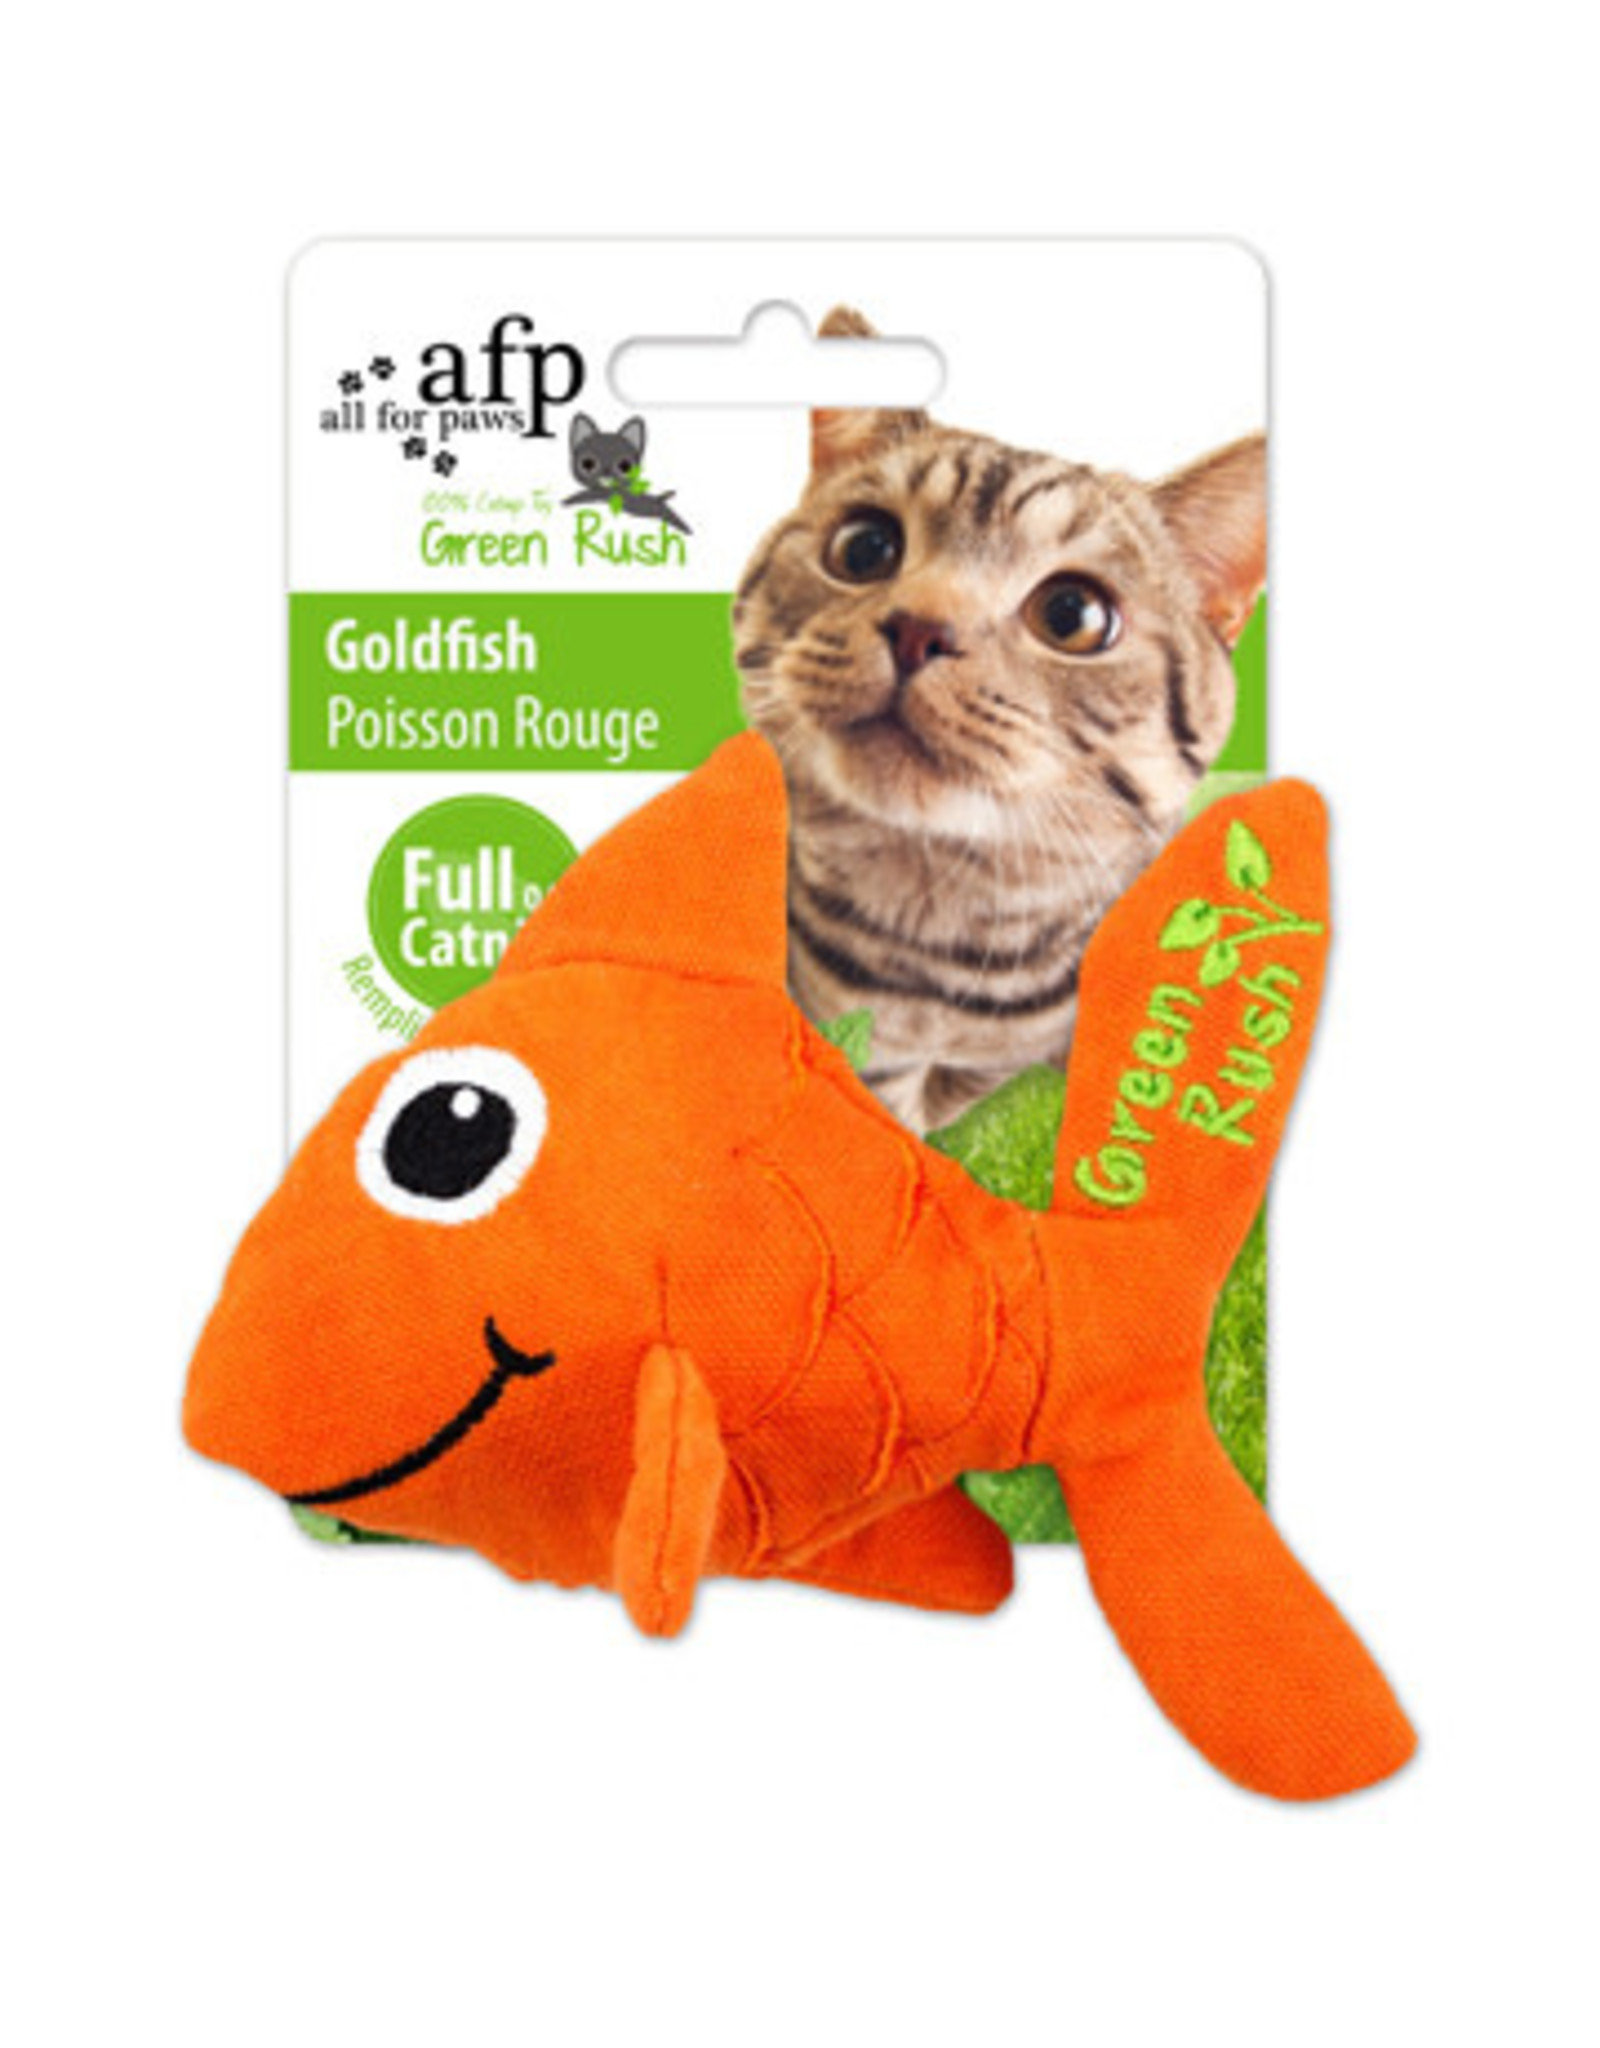 All for Paws Green Rush Goldfish